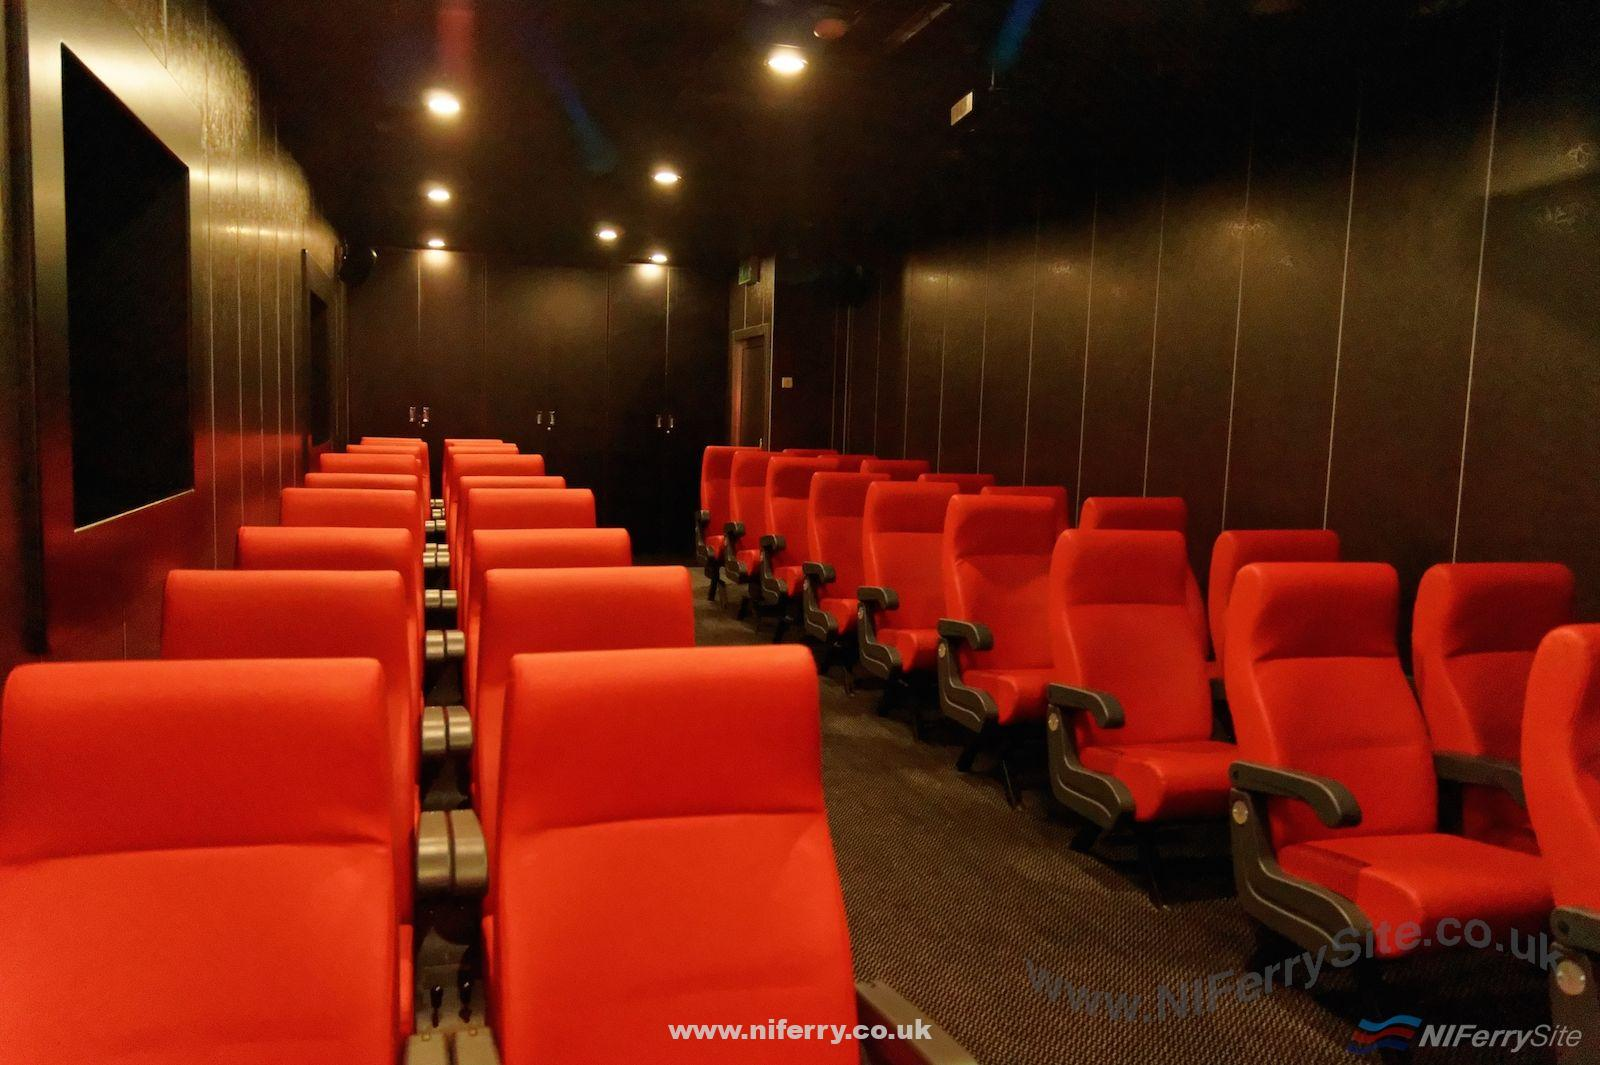 An alternative view of the cinema on Stena Mersey from front to back (looking aft). © Steven Tarbox.